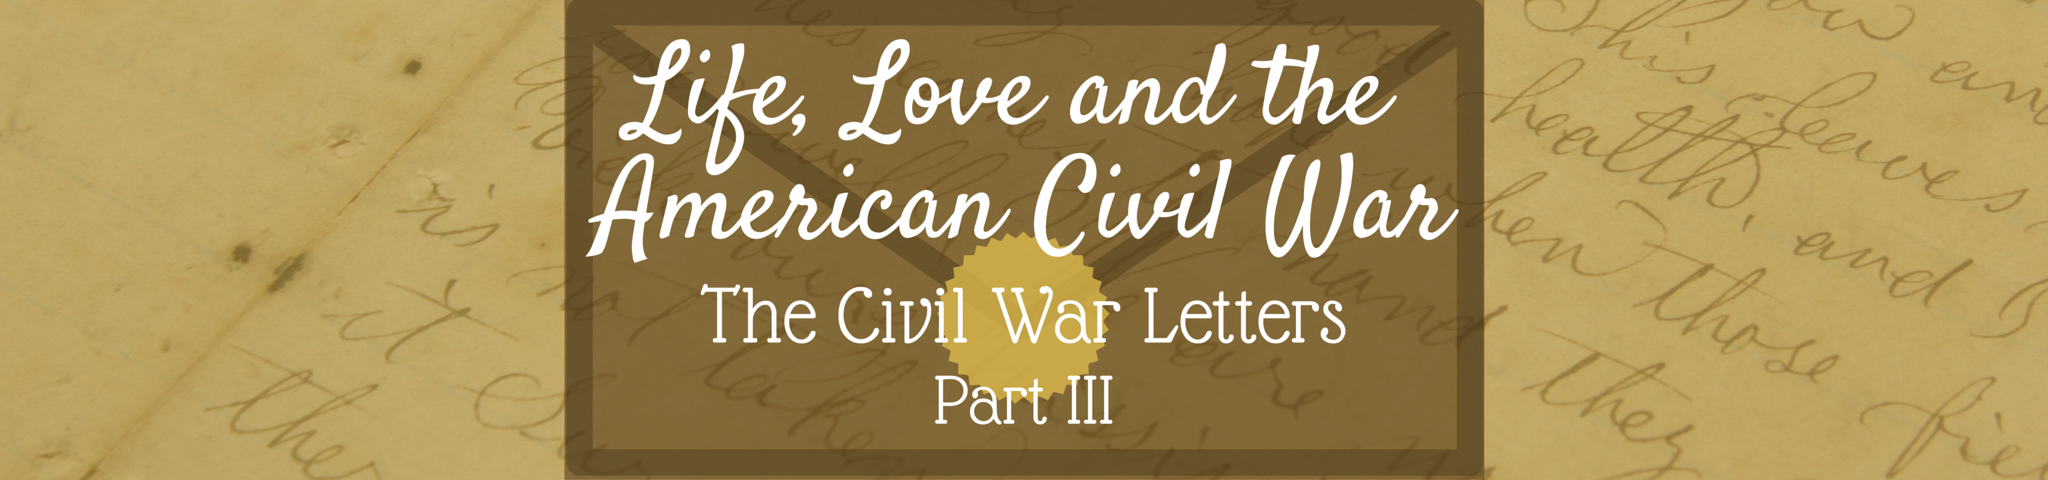 Life, Love and the American Civil War by RoofTop Antiques